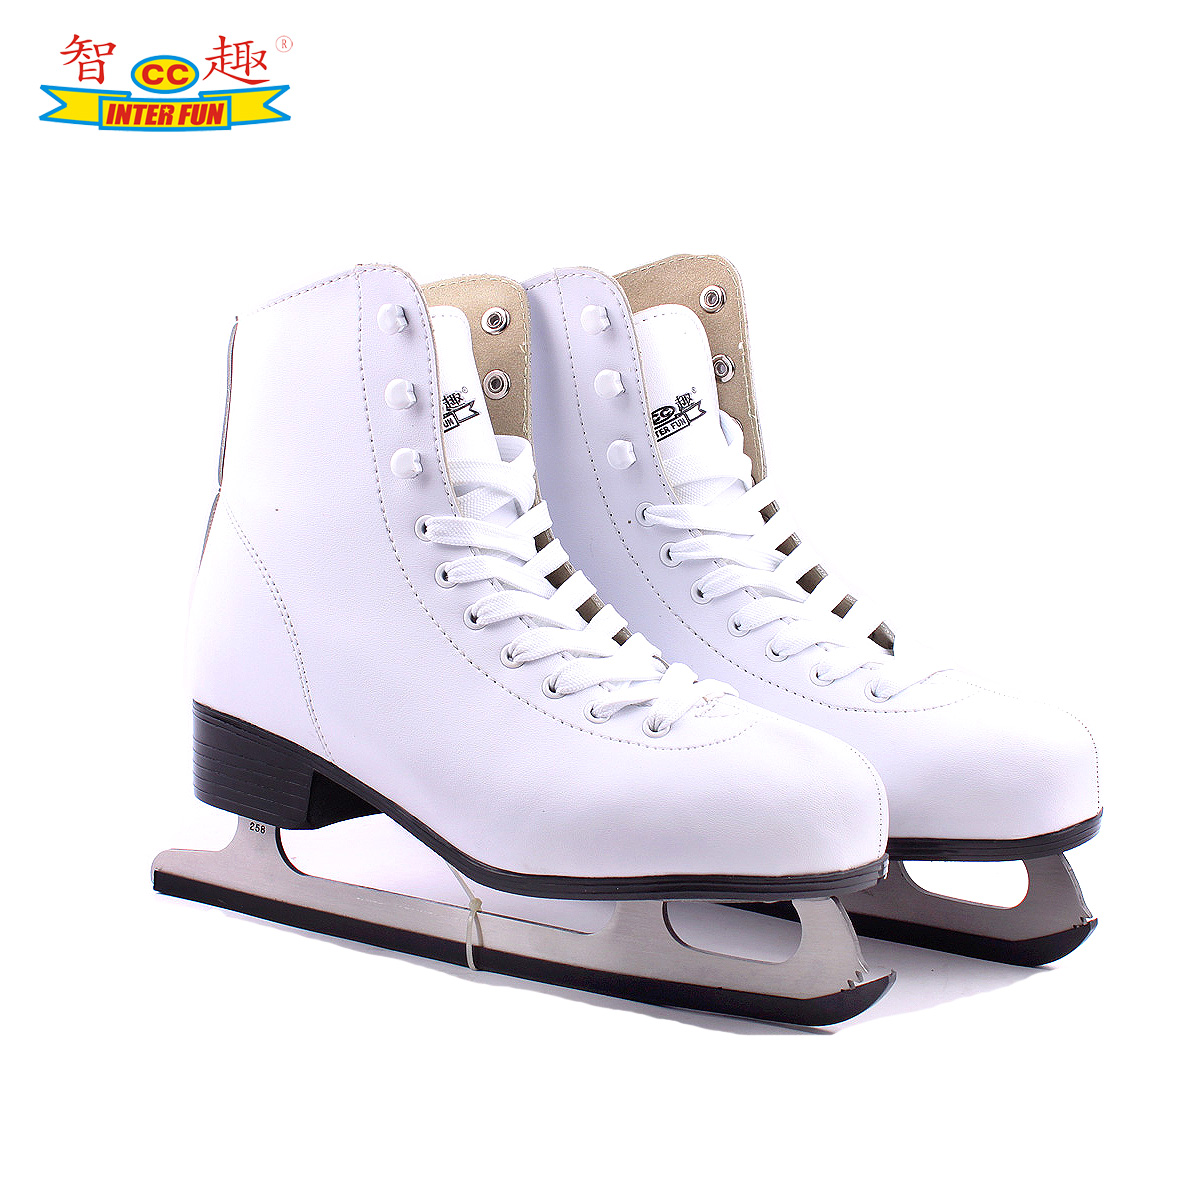 Intellectual desires authentic skate shoes adult fancy skates skating shoes for men and women in adult roller skates